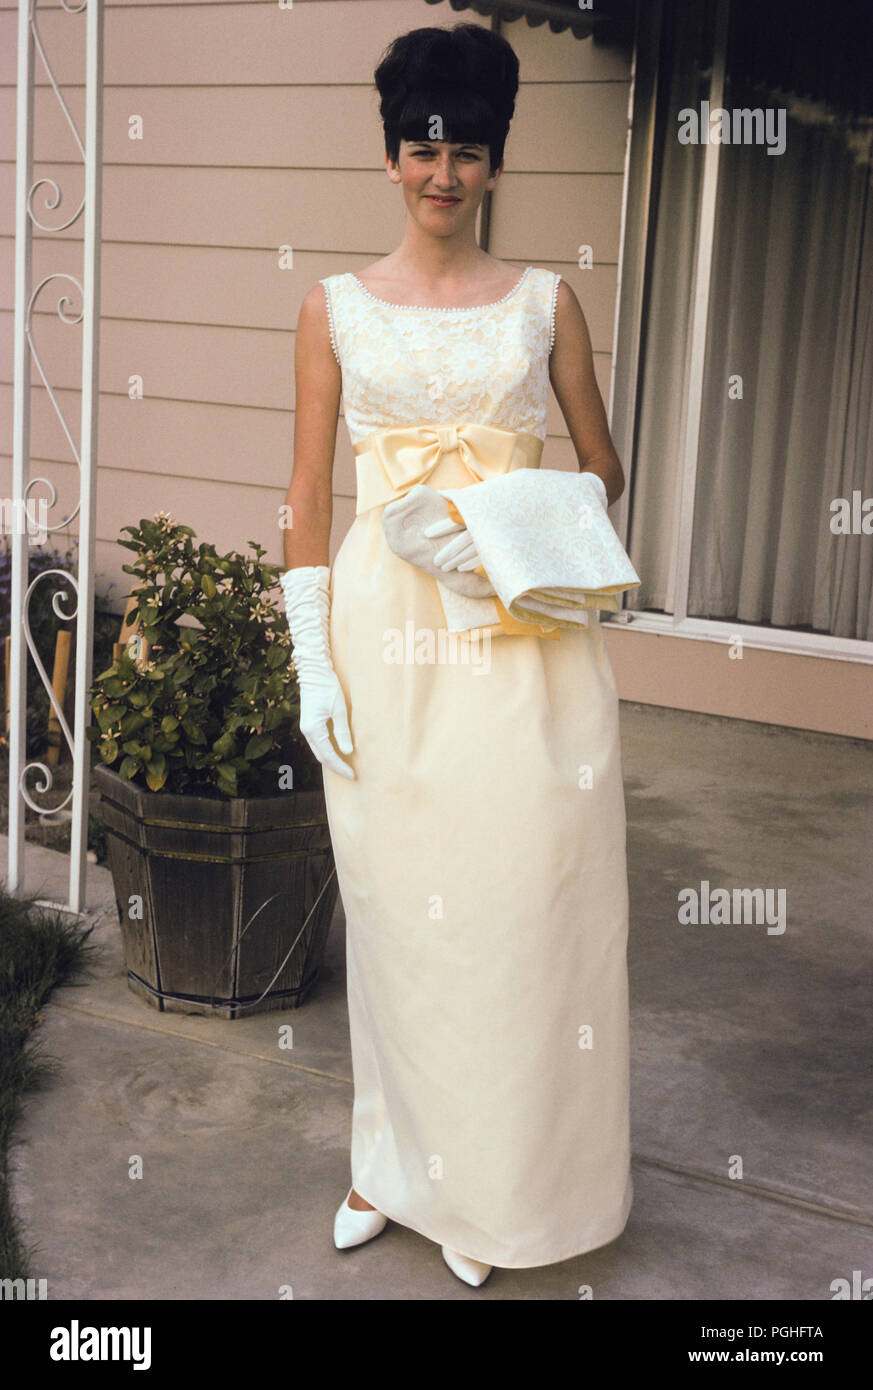 9013a4a255b8 Teenage Girl Going to a 1965 High School Prom, CA, USA - Stock Image